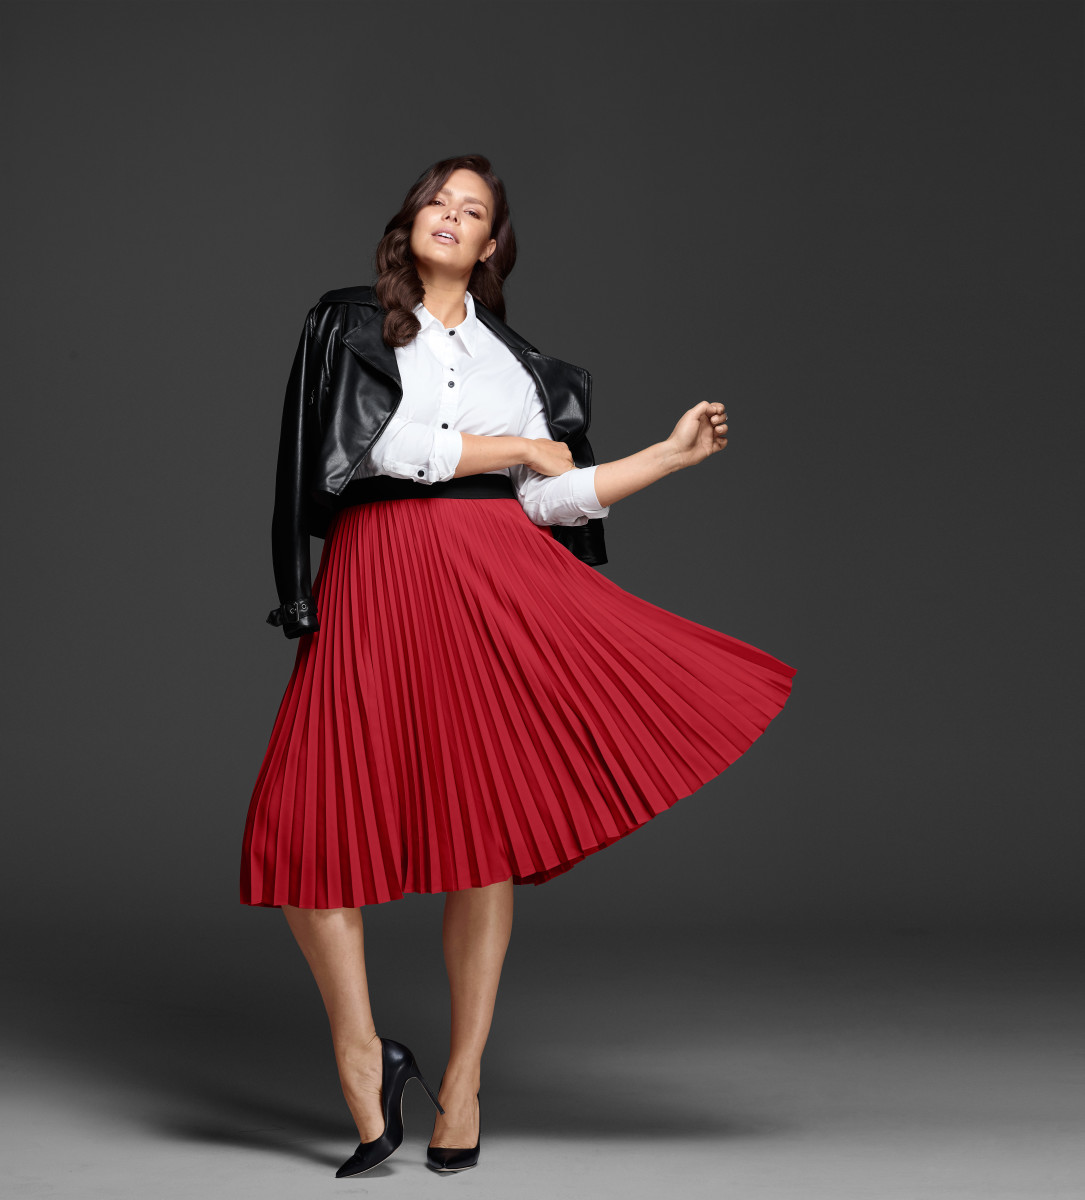 Candice Huffine models the 'Glamour' x Lane Bryant October collection. Photo: Glamour x Lane Bryant